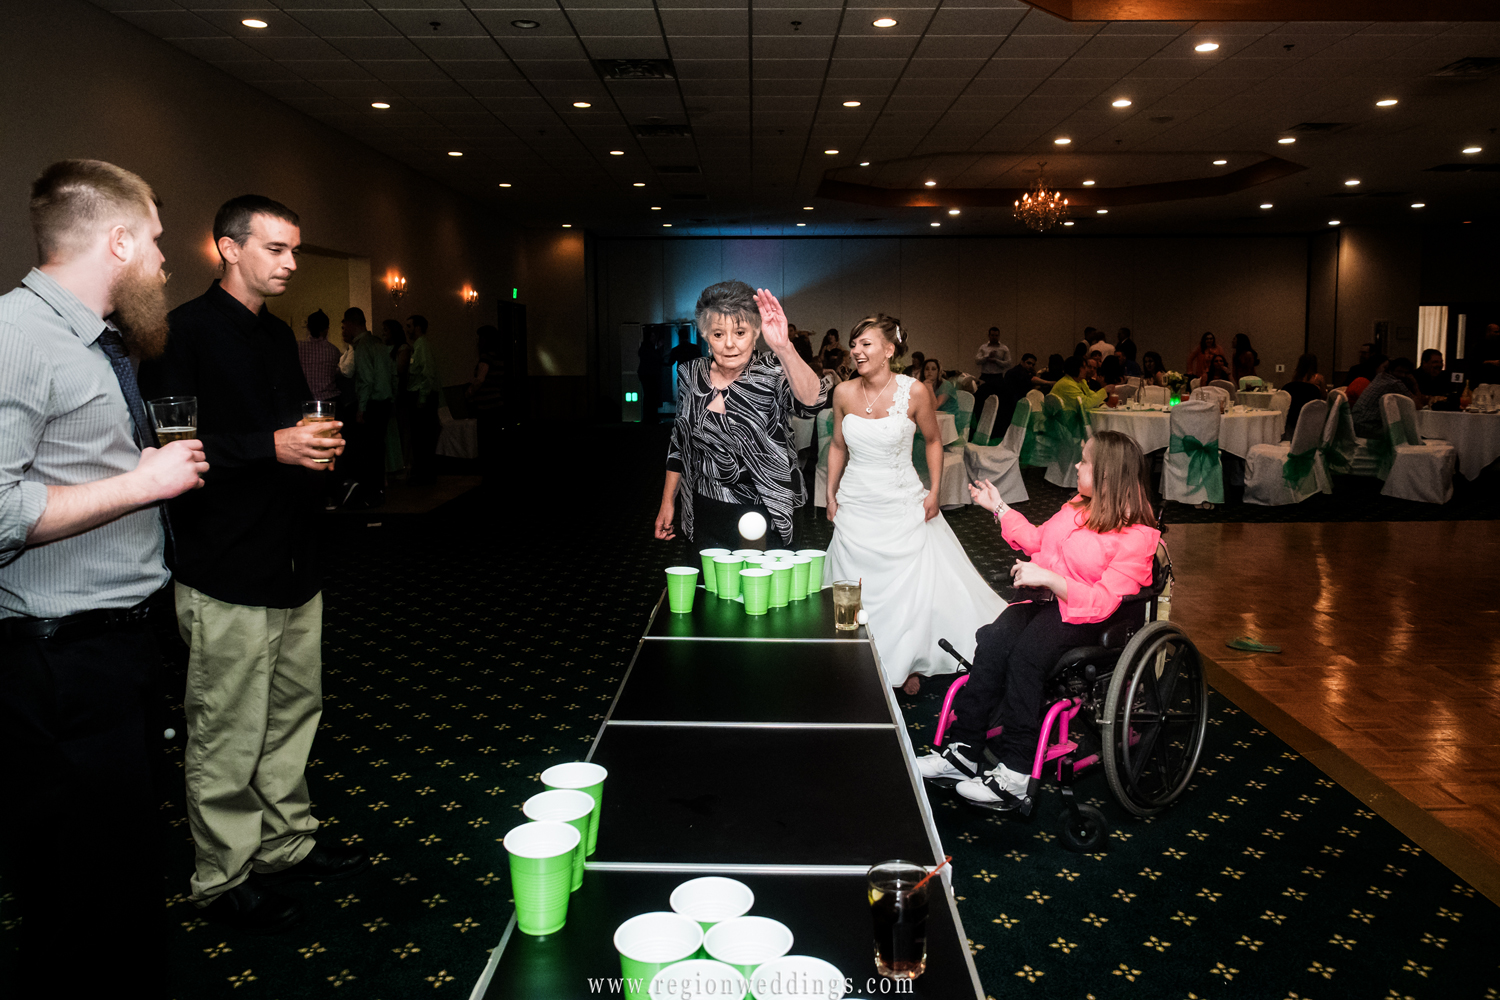 Grandma tries her hand at a little beer pong.